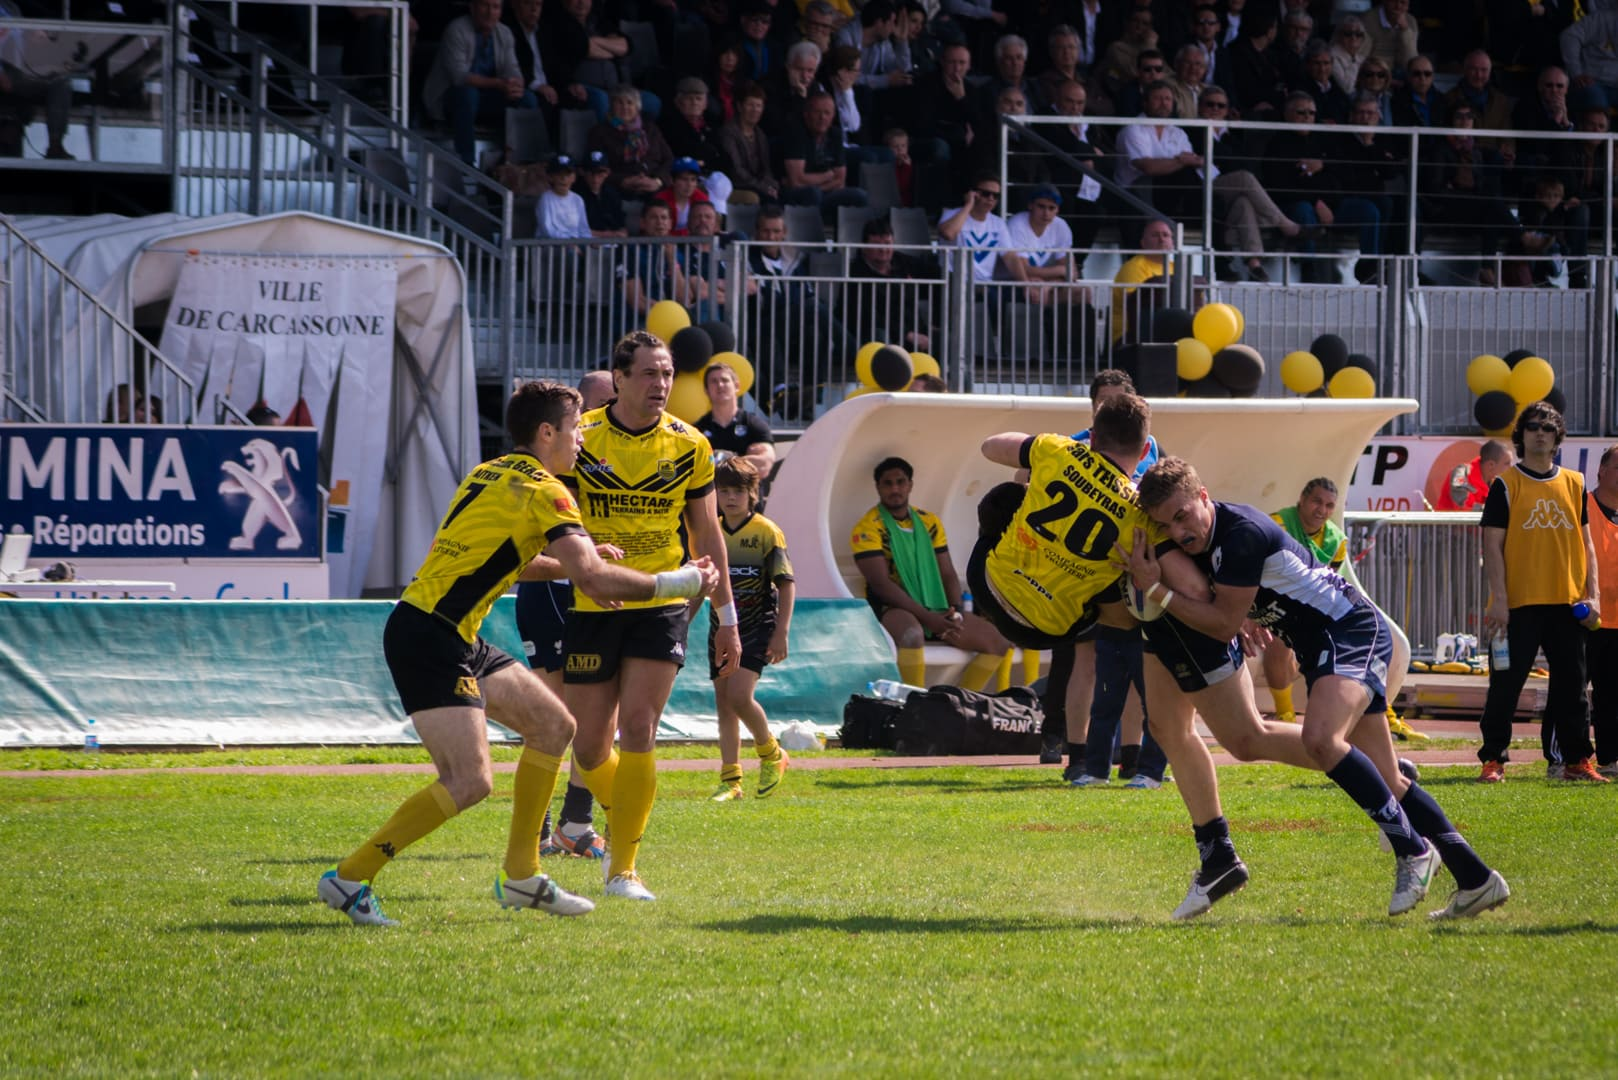 Photo de la finale de la coupe de France de Rugby à XIII : Toulouse - Carcassonne 21